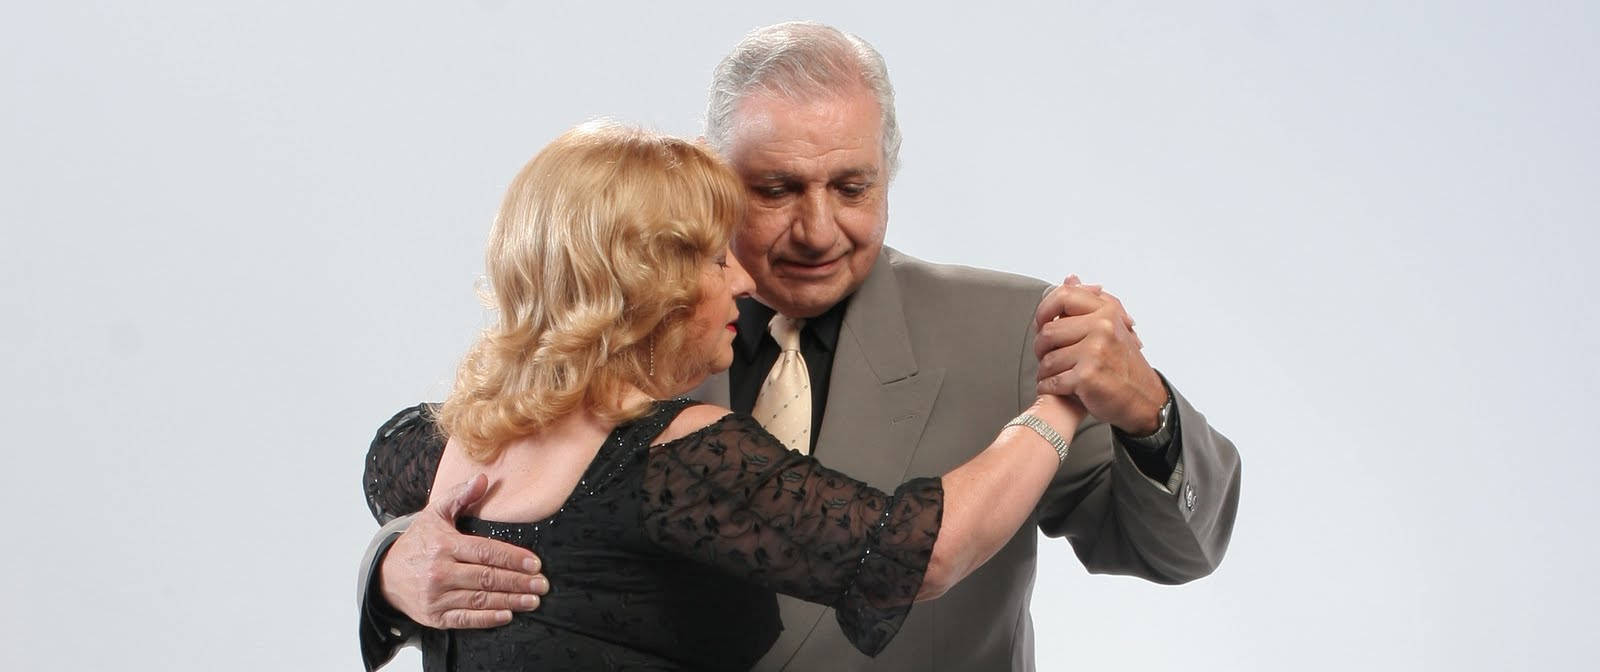 Carlos and Rosa Perez are dancers and teachers at the Club Sunderland.